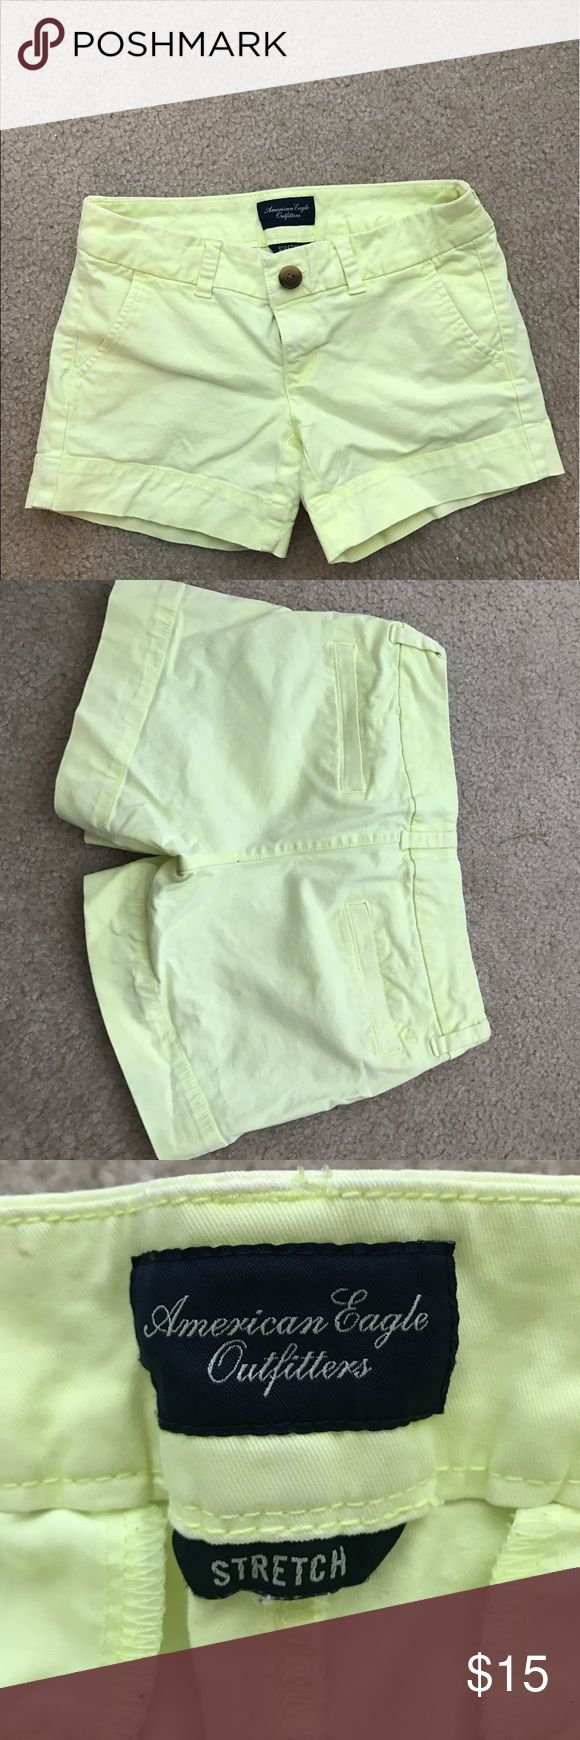 American Eagle neon yellow shorts Size 0. Stretch American Eagle Outfitters Shorts